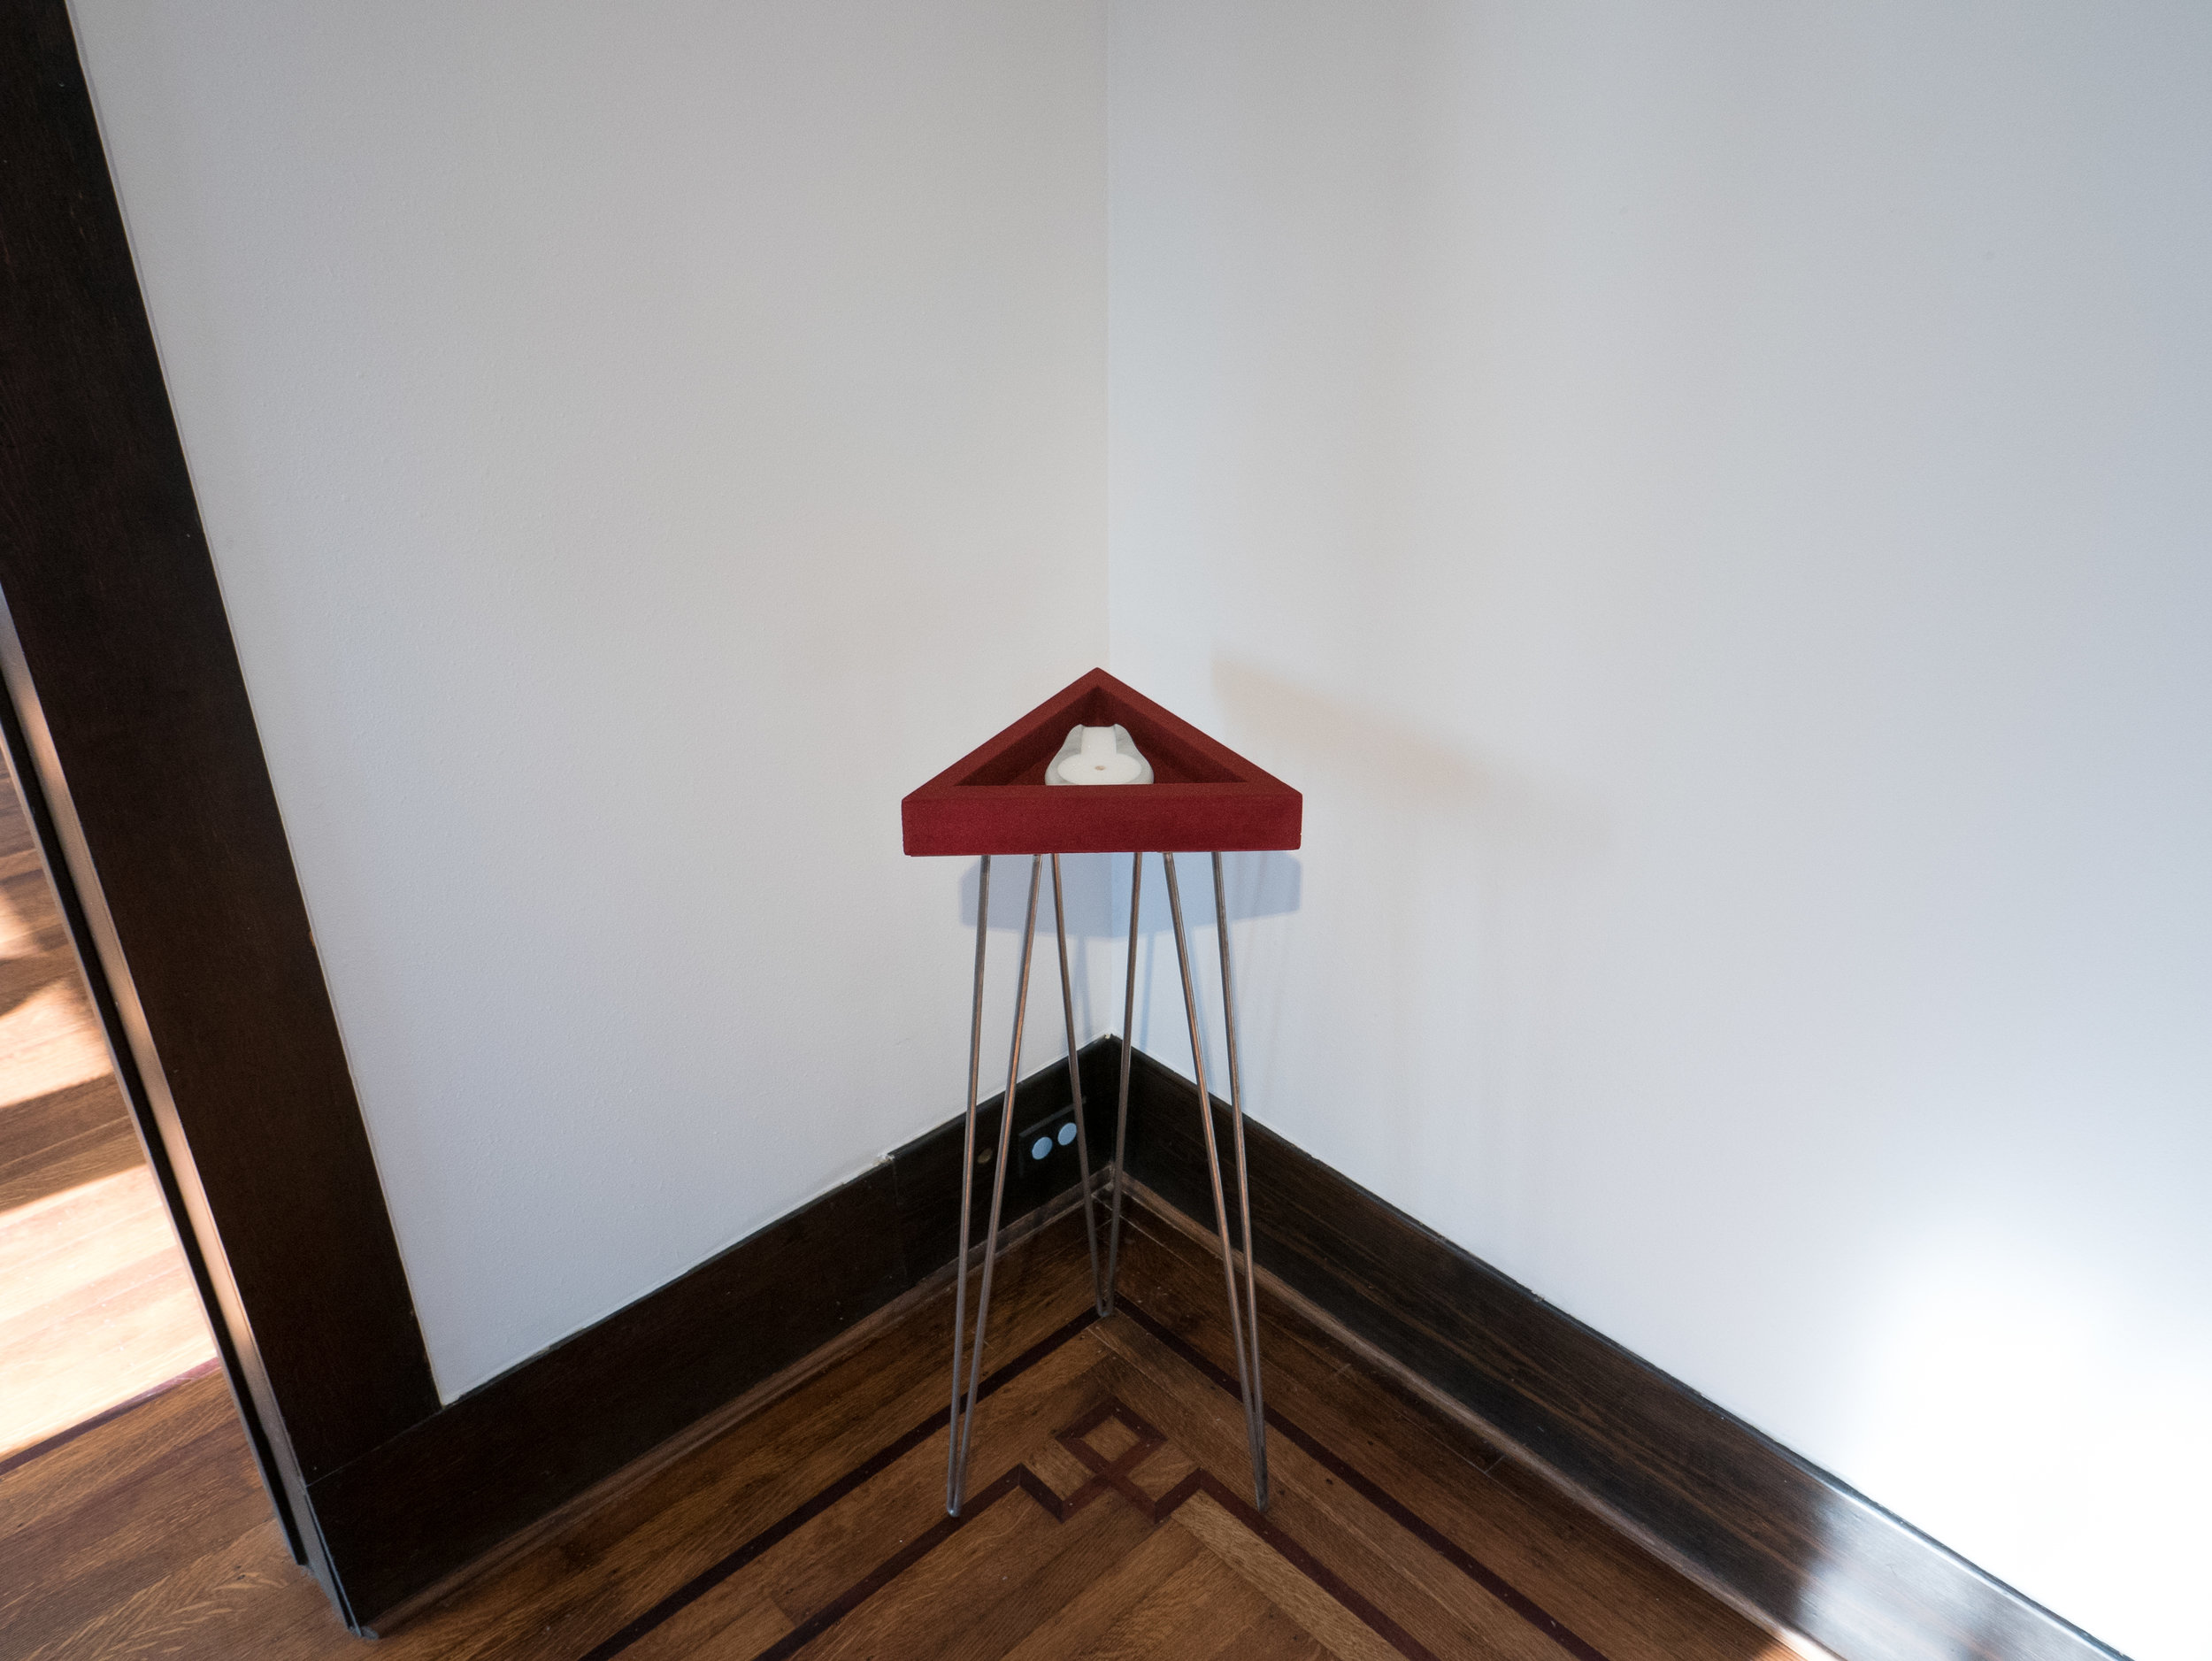 smother Installation Images (17 of 24).jpg